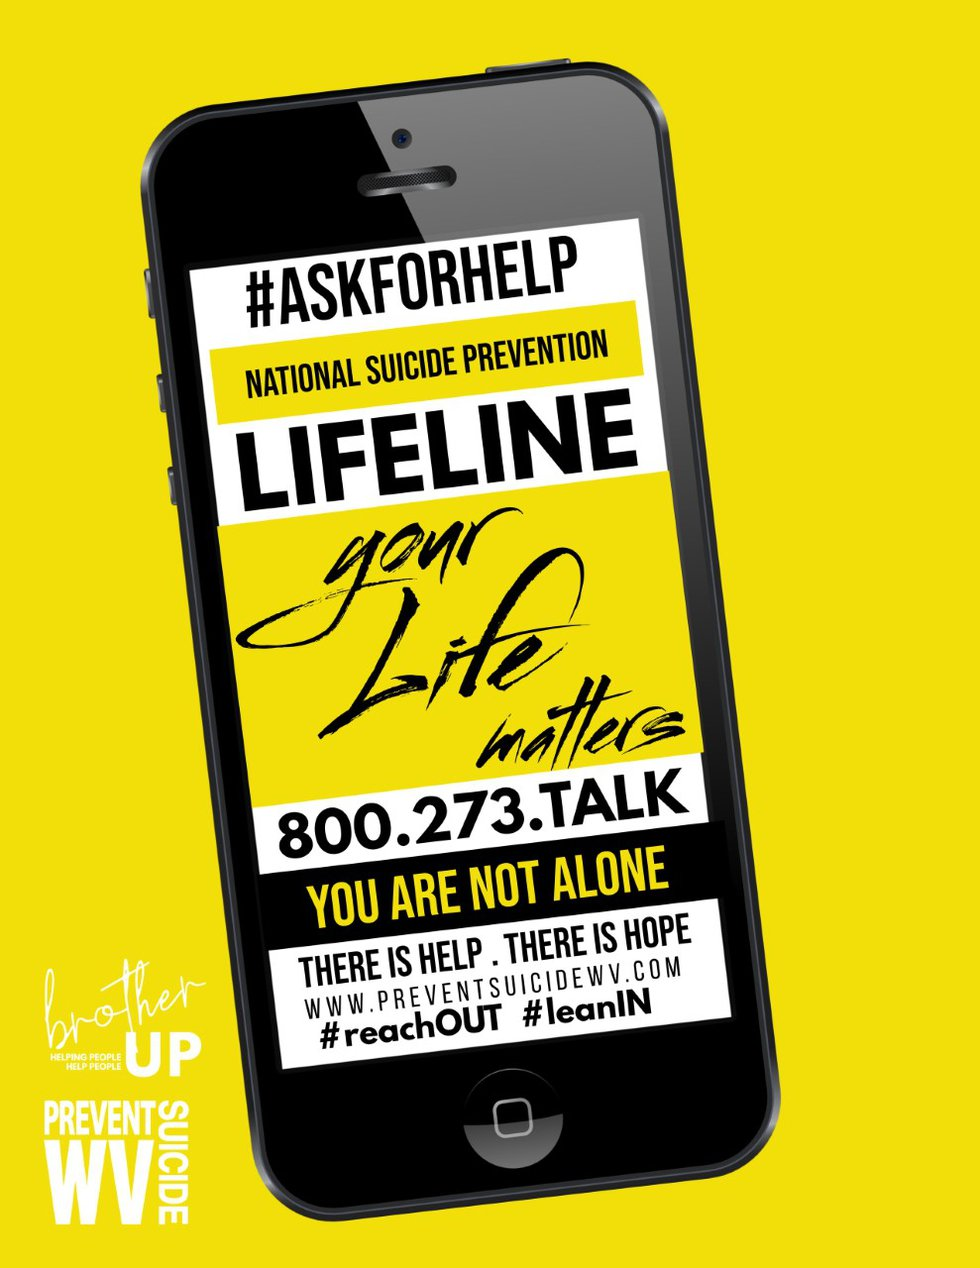 Anyone thinking about suicide can call 800-273-8255, the lifeline number or text HOME to 741741.